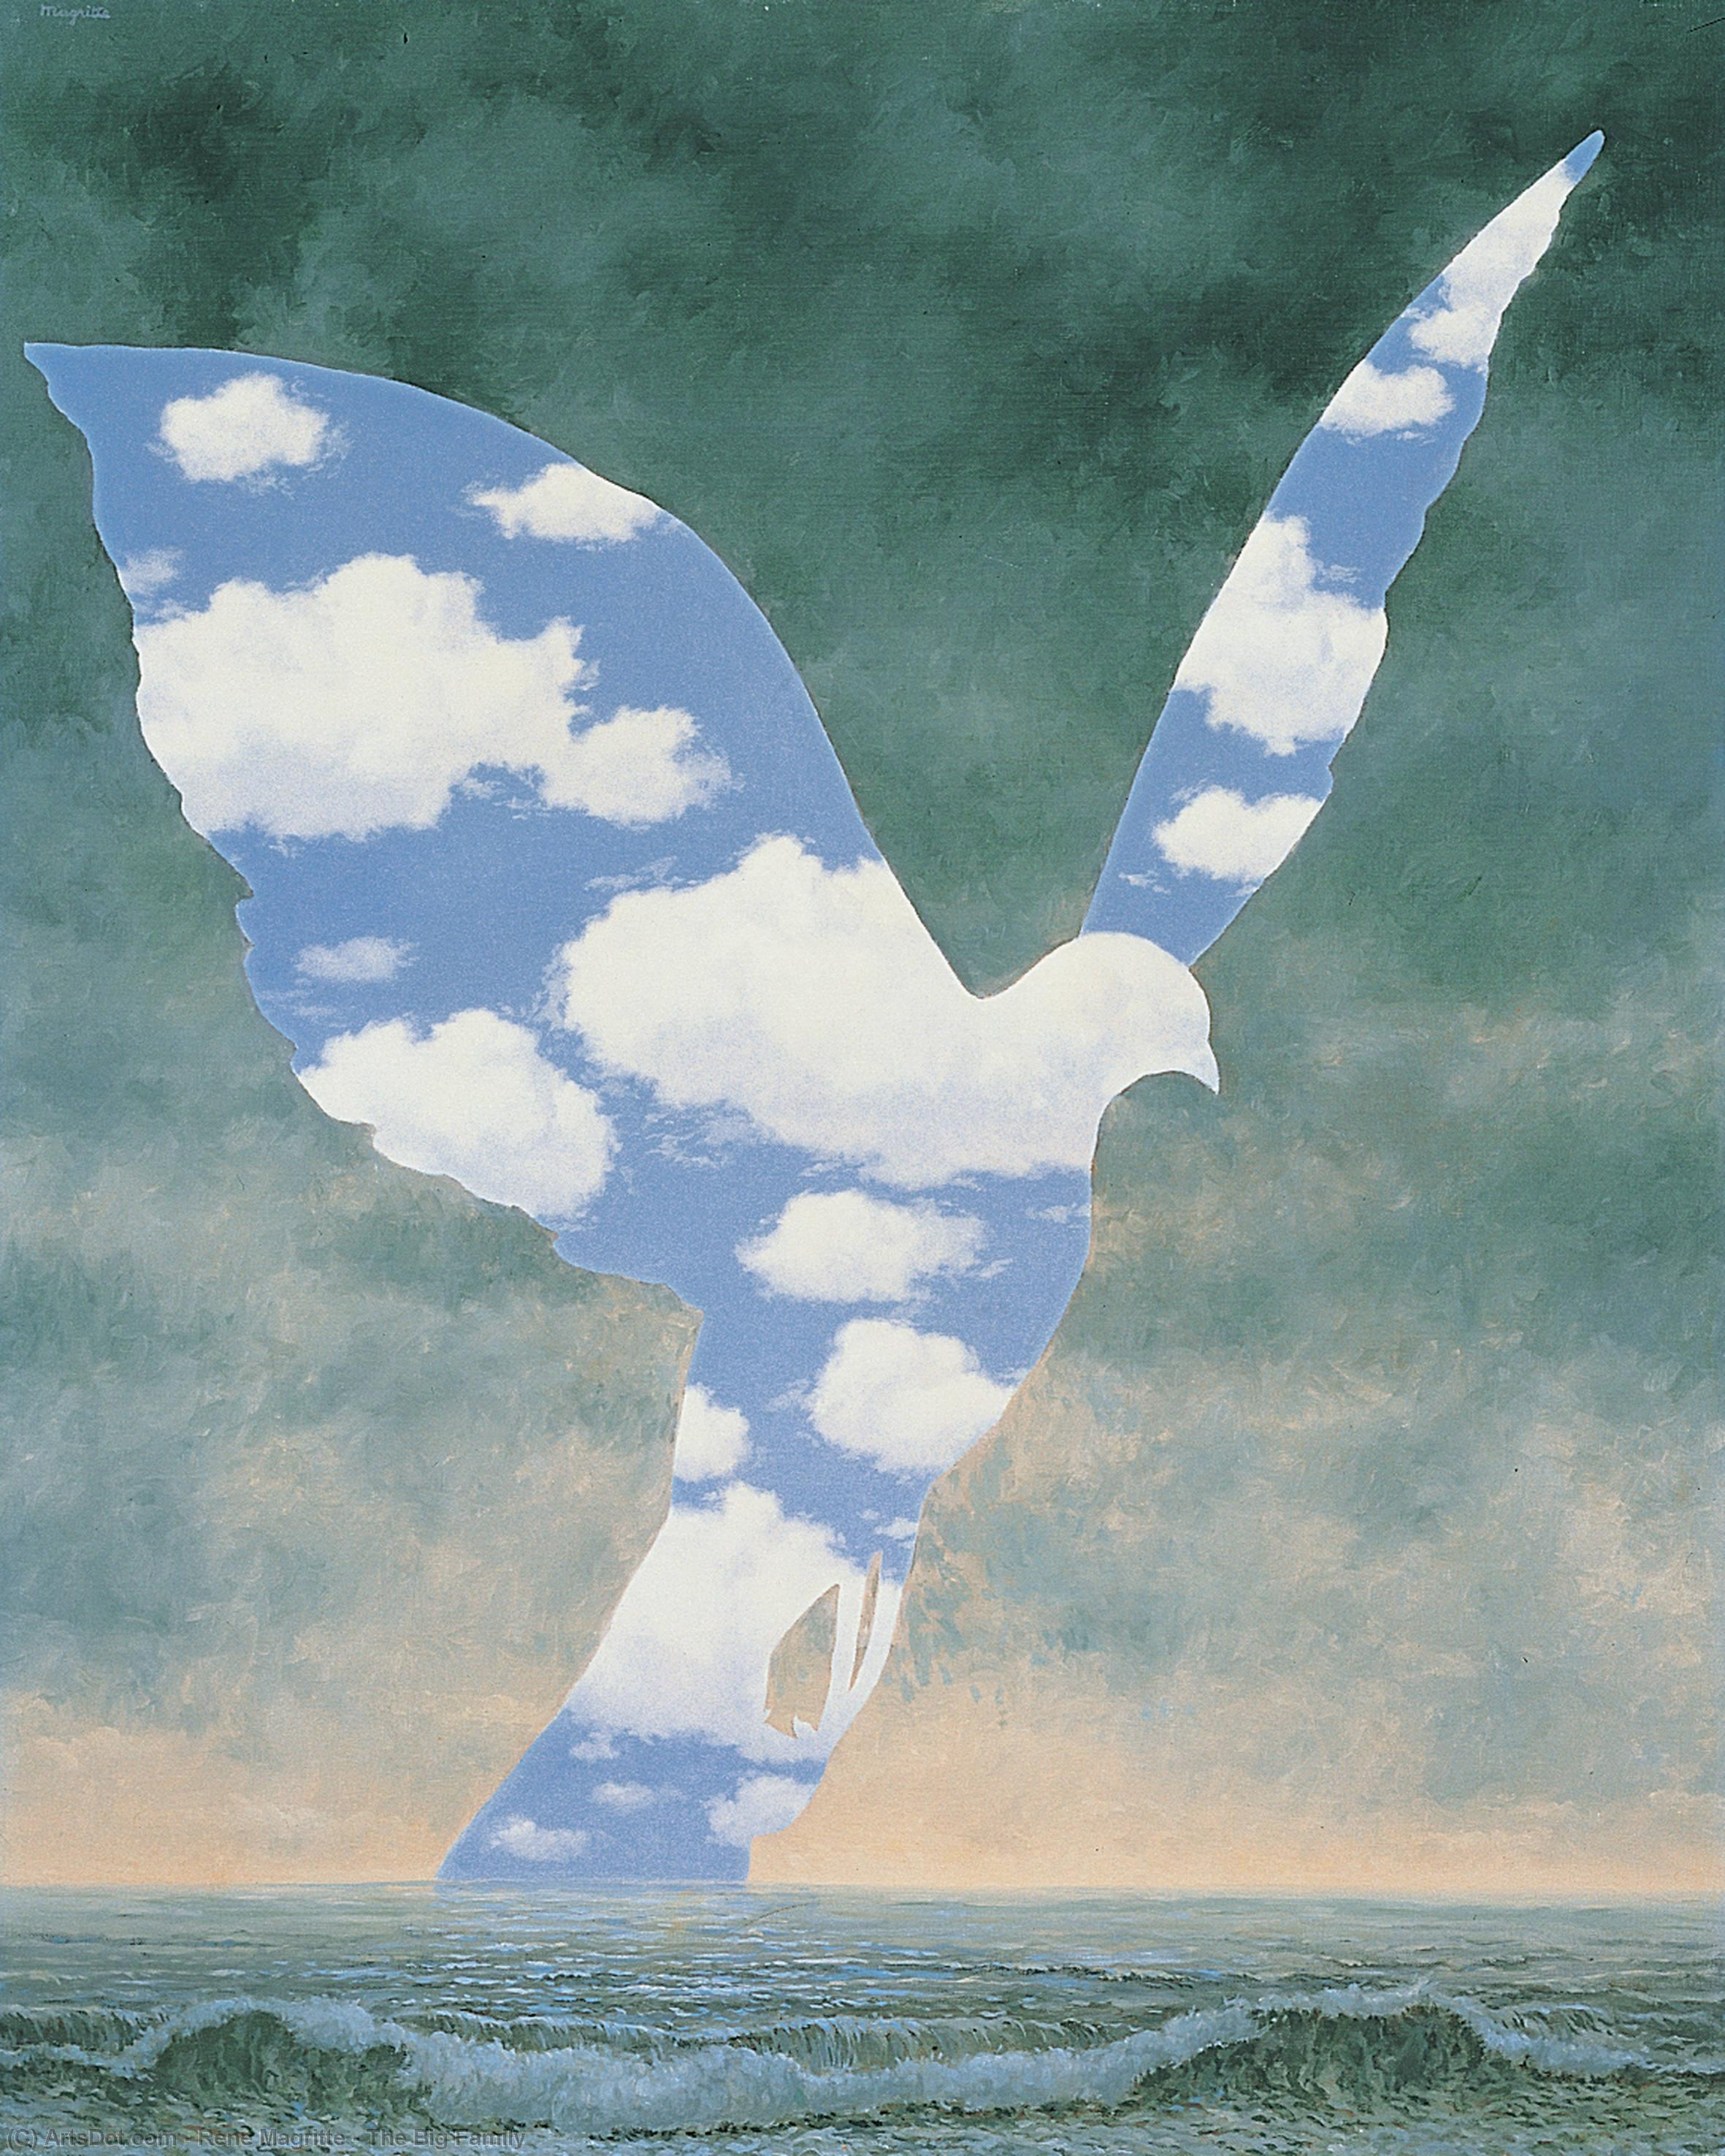 Wikioo.org - The Encyclopedia of Fine Arts - Painting, Artwork by Rene Magritte - The Big Family